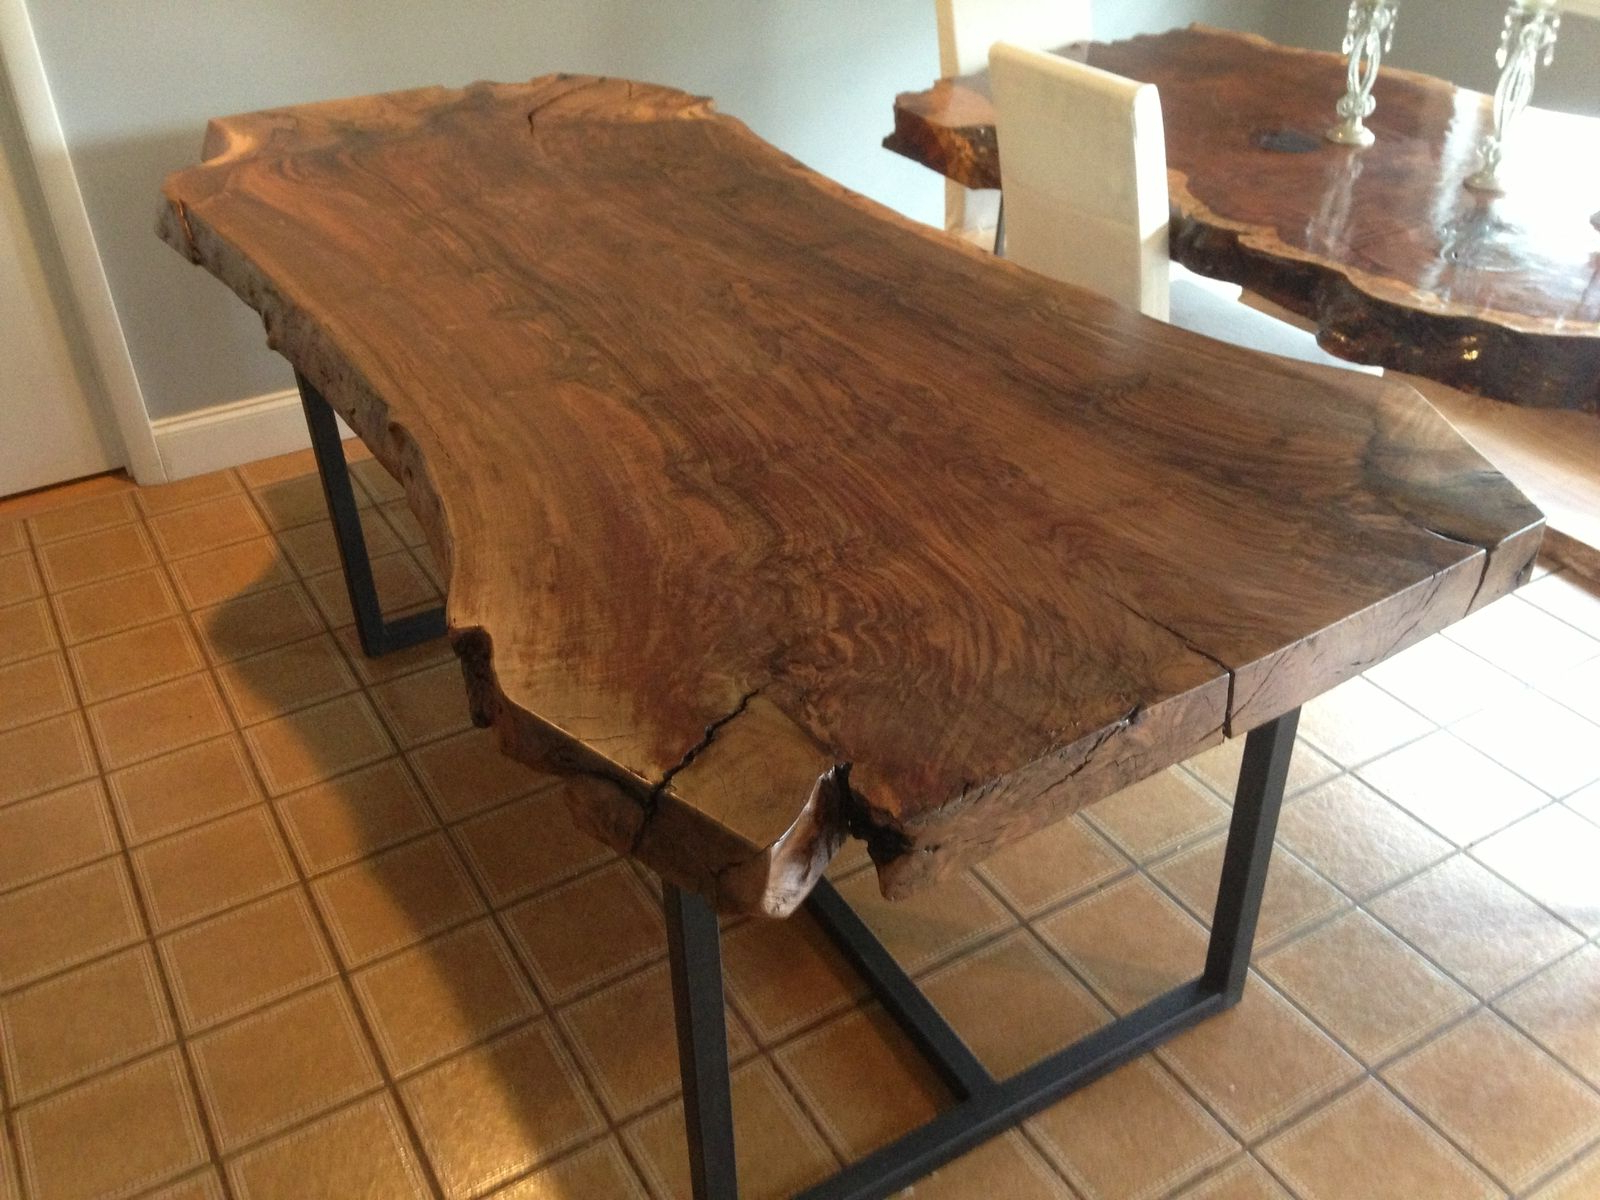 Well Liked Handmade Live Edge Claro Walnut Dining Tableozma Design In Walnut Finish Live Edge Wood Contemporary Dining Tables (View 30 of 30)